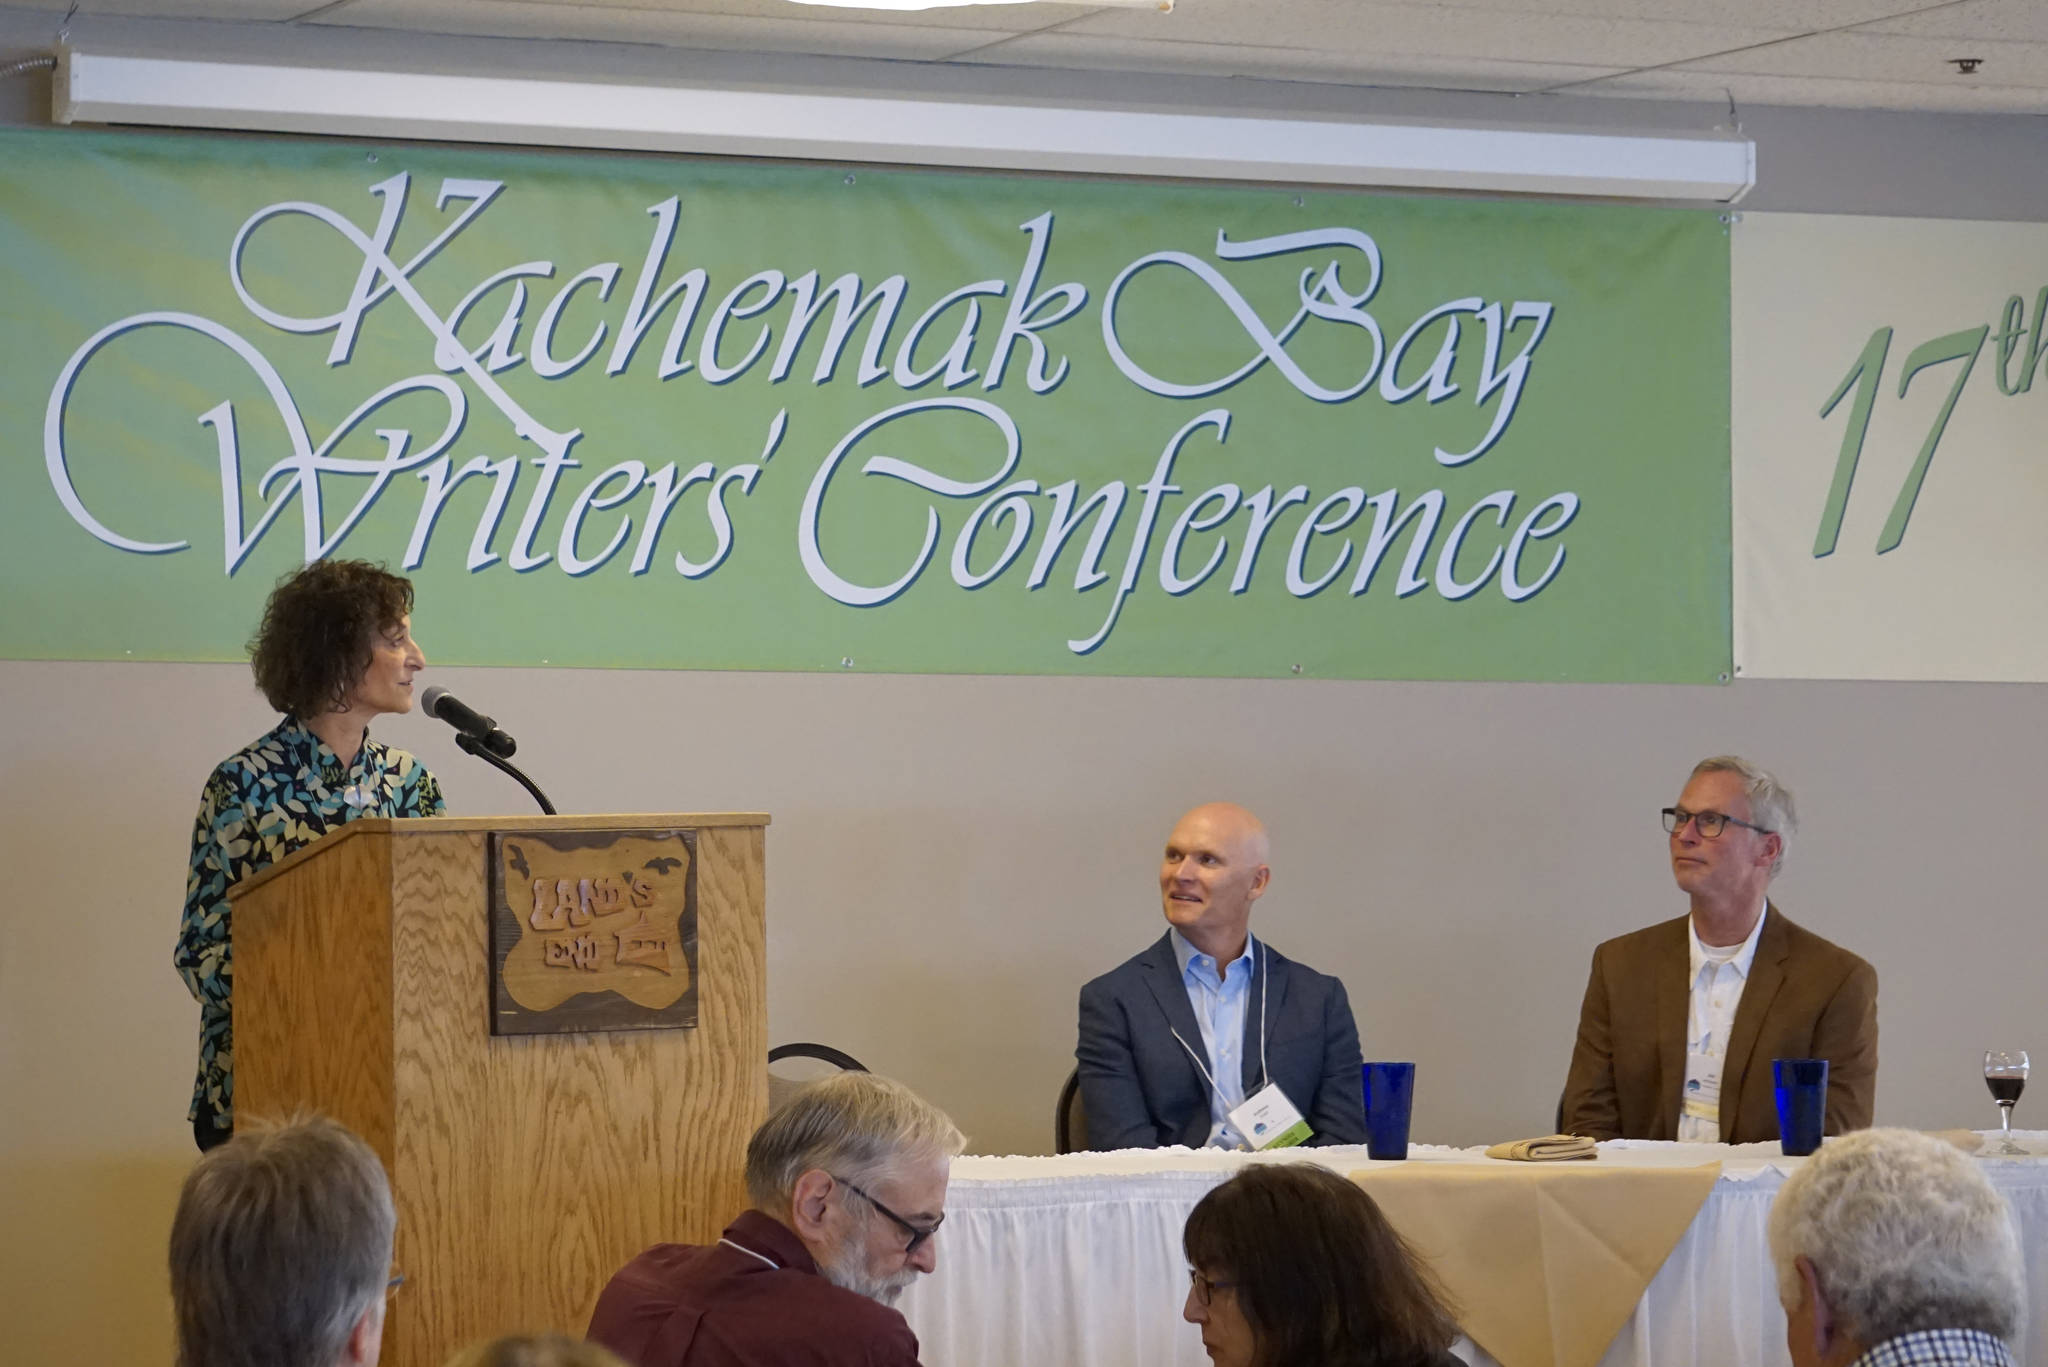 Kachemak Bay Campus Director Carol Swartz, left, speaks June 8, 2018, at the opening of the 2018 Kachemak Bay Writers' Conference at Land's End Resort in Homer, Alaska. (Photo by Michael Armstrong/Homer News)